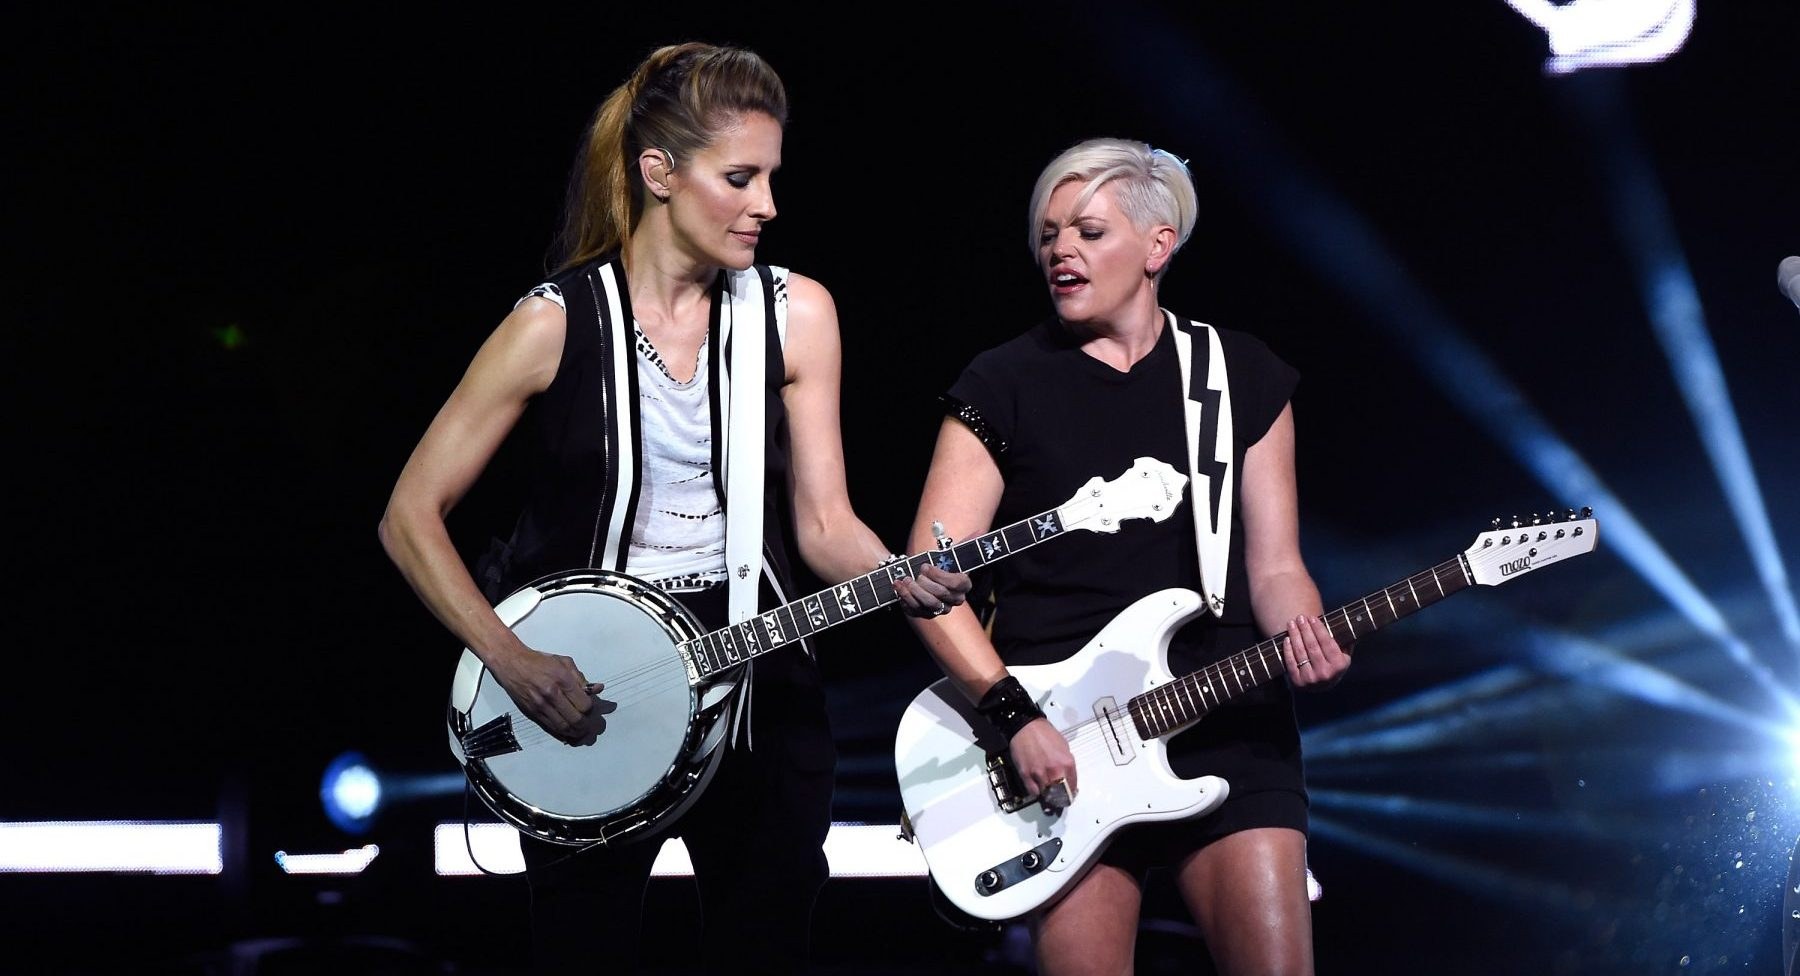 Dixie Chicks are at Calgary's Scotiabank Saddledome this weekend